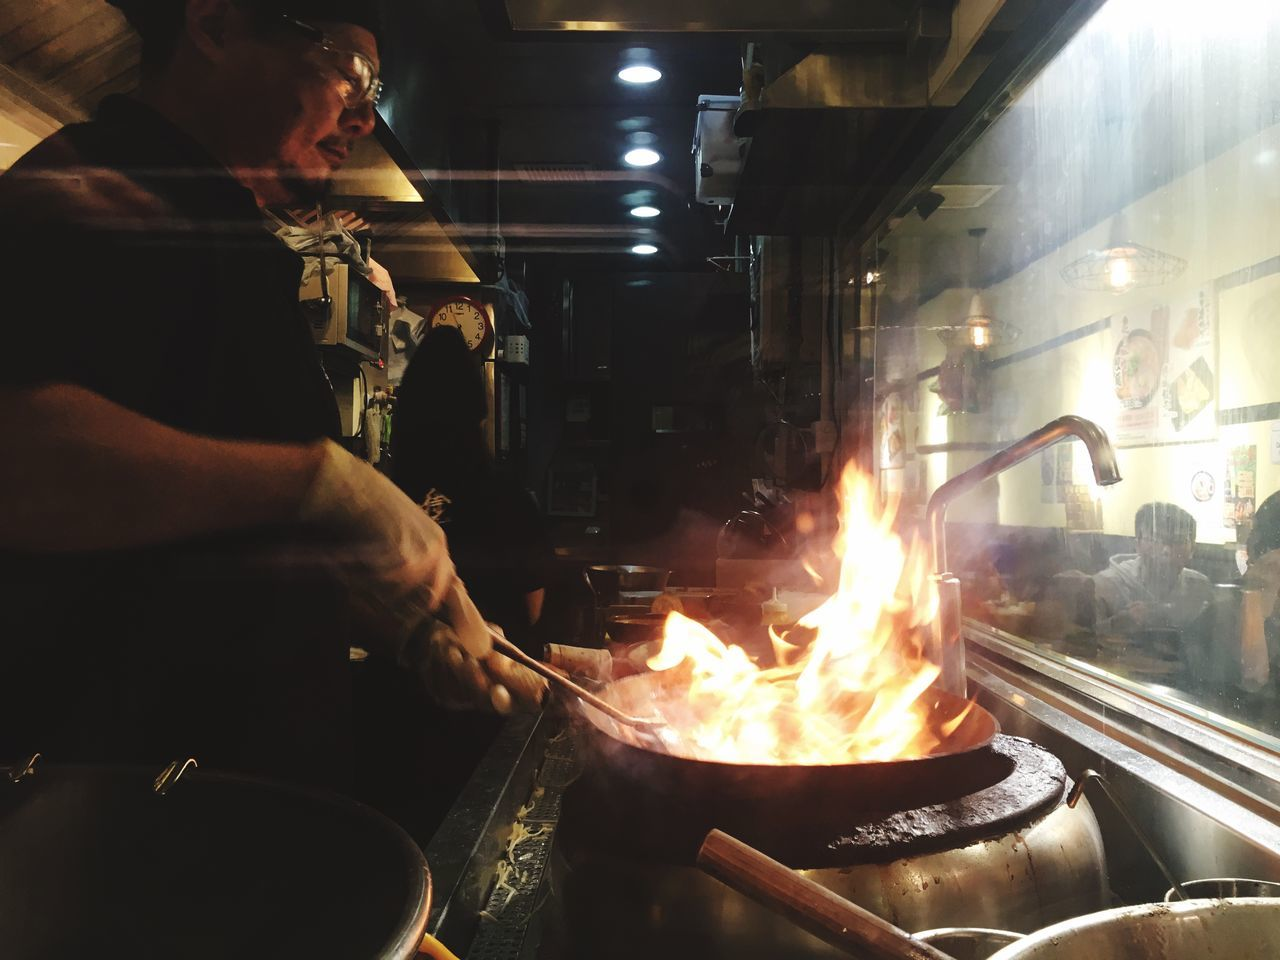 Preparation  Real People Indoors  Adults Only Heat - Temperature Working Expertise One Person Commercial Kitchen People Adult Only Women Day HongKong Fire Cooking